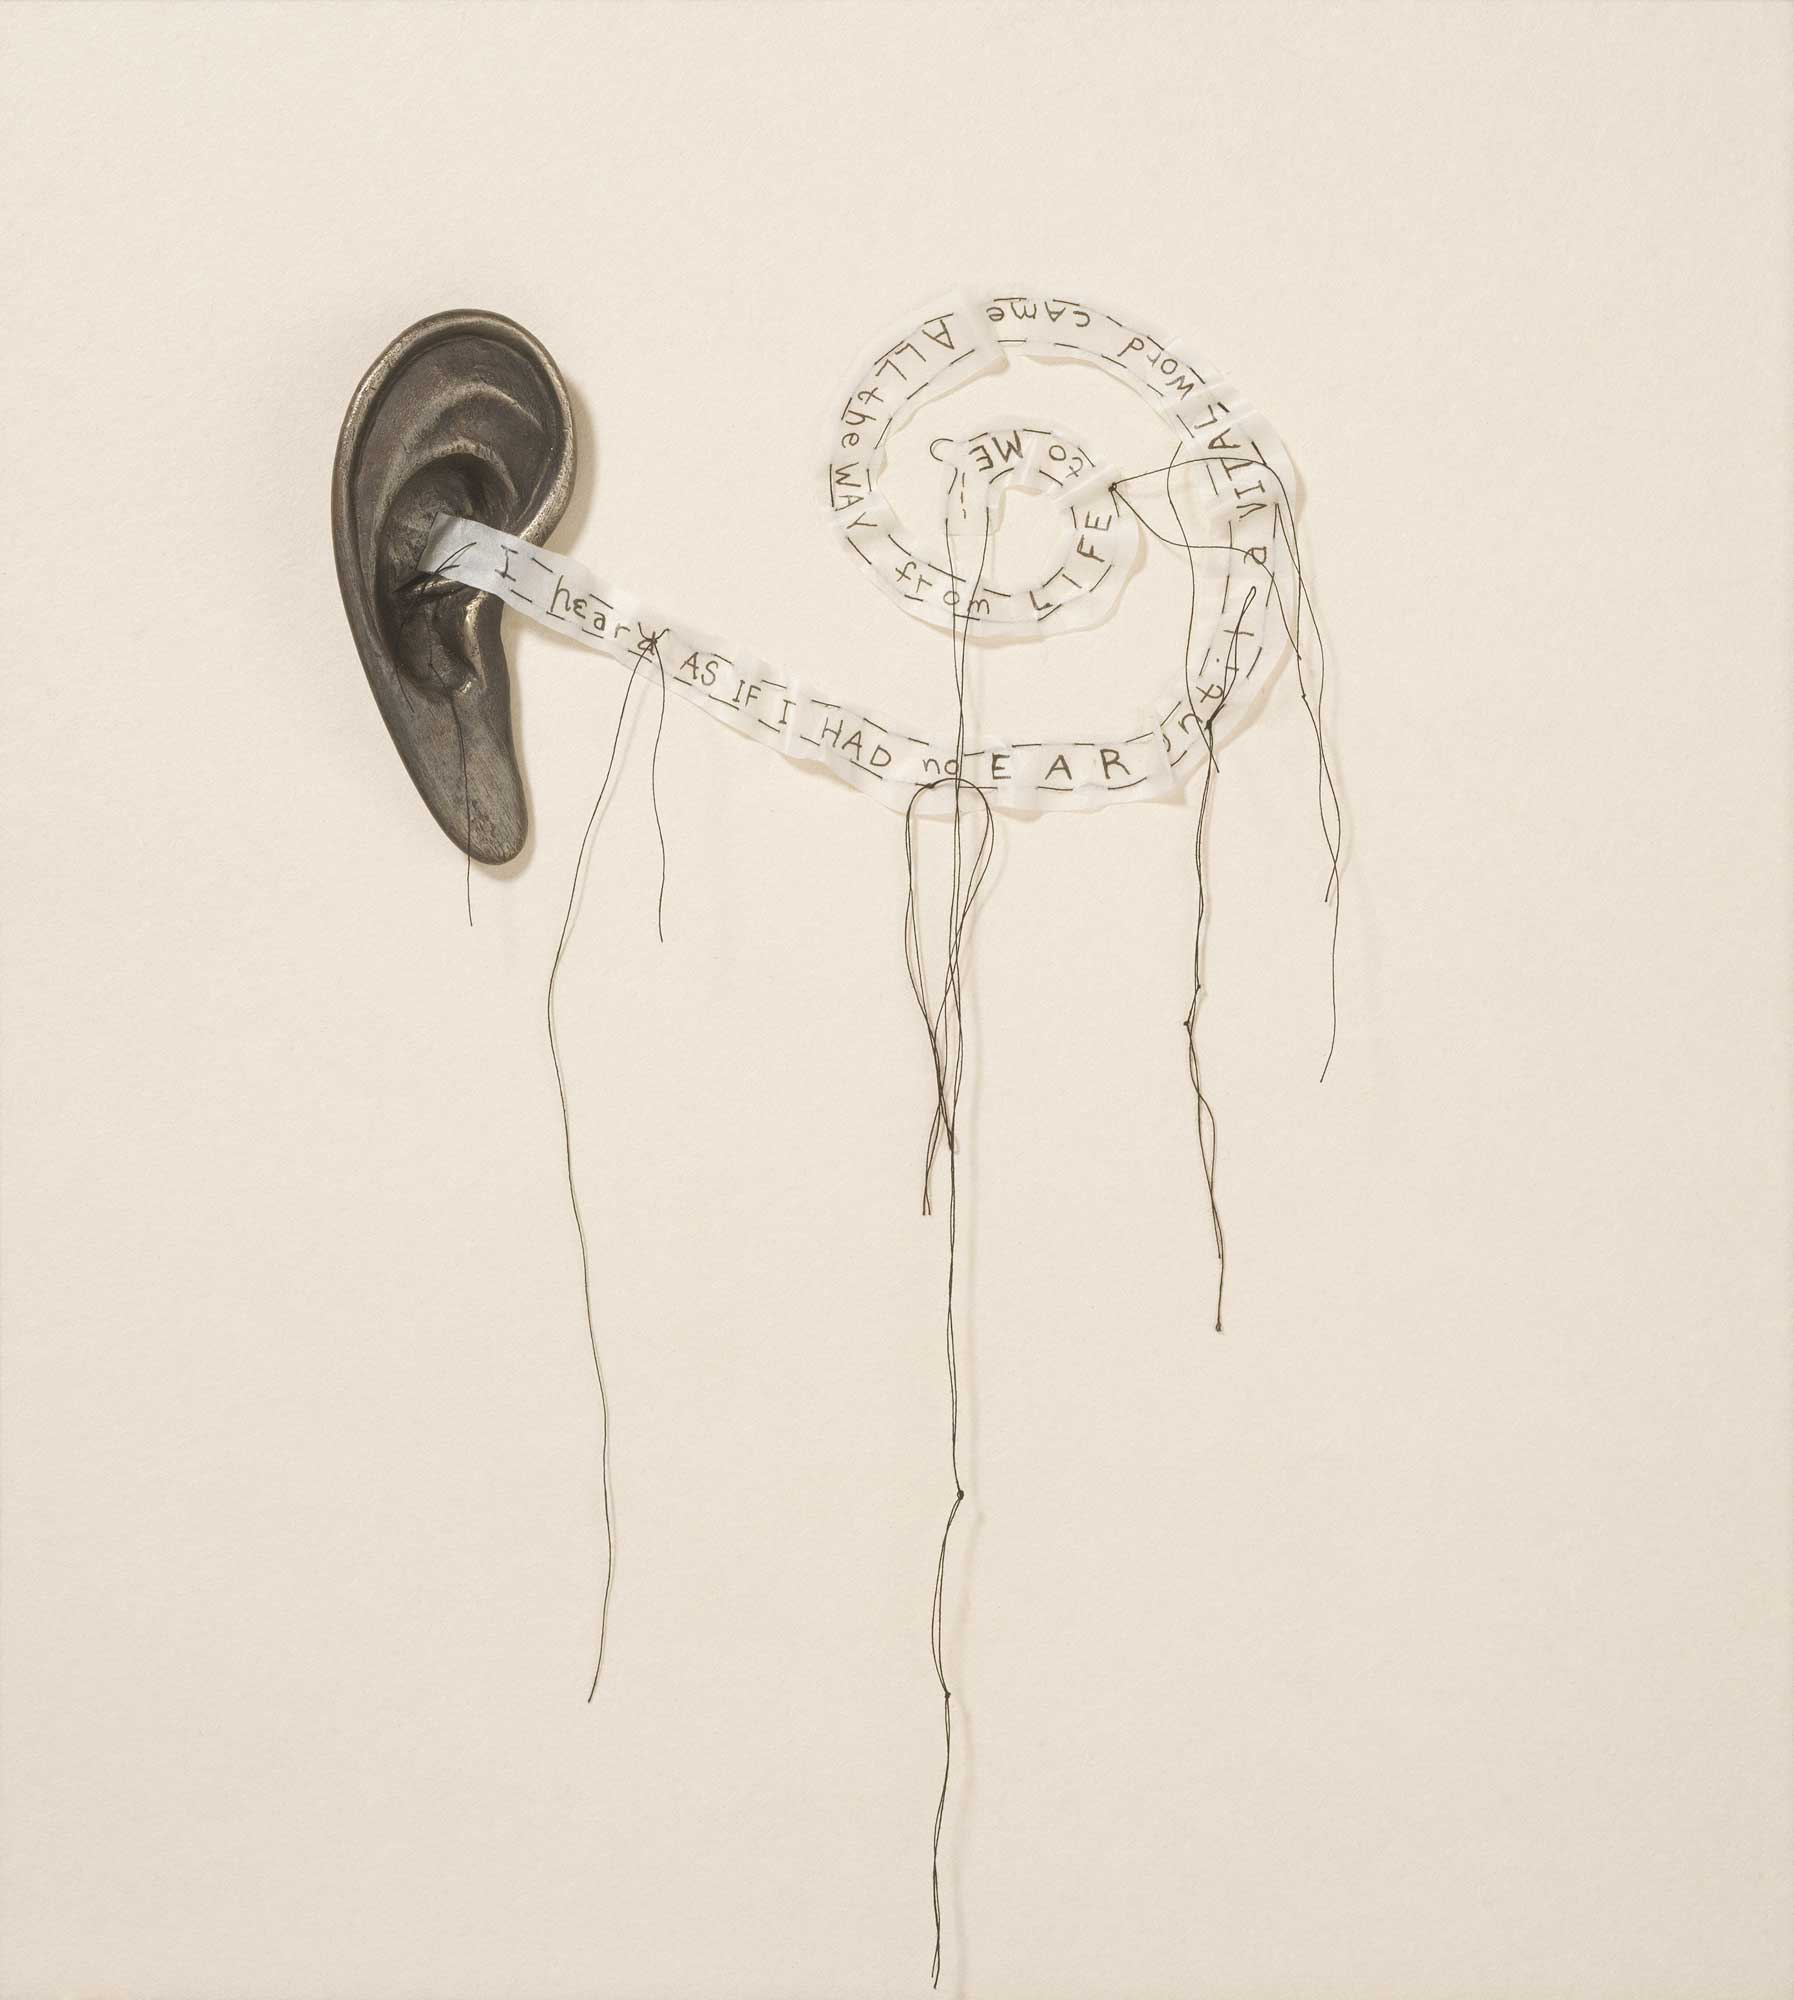 Ear Poem by Lesley Dill